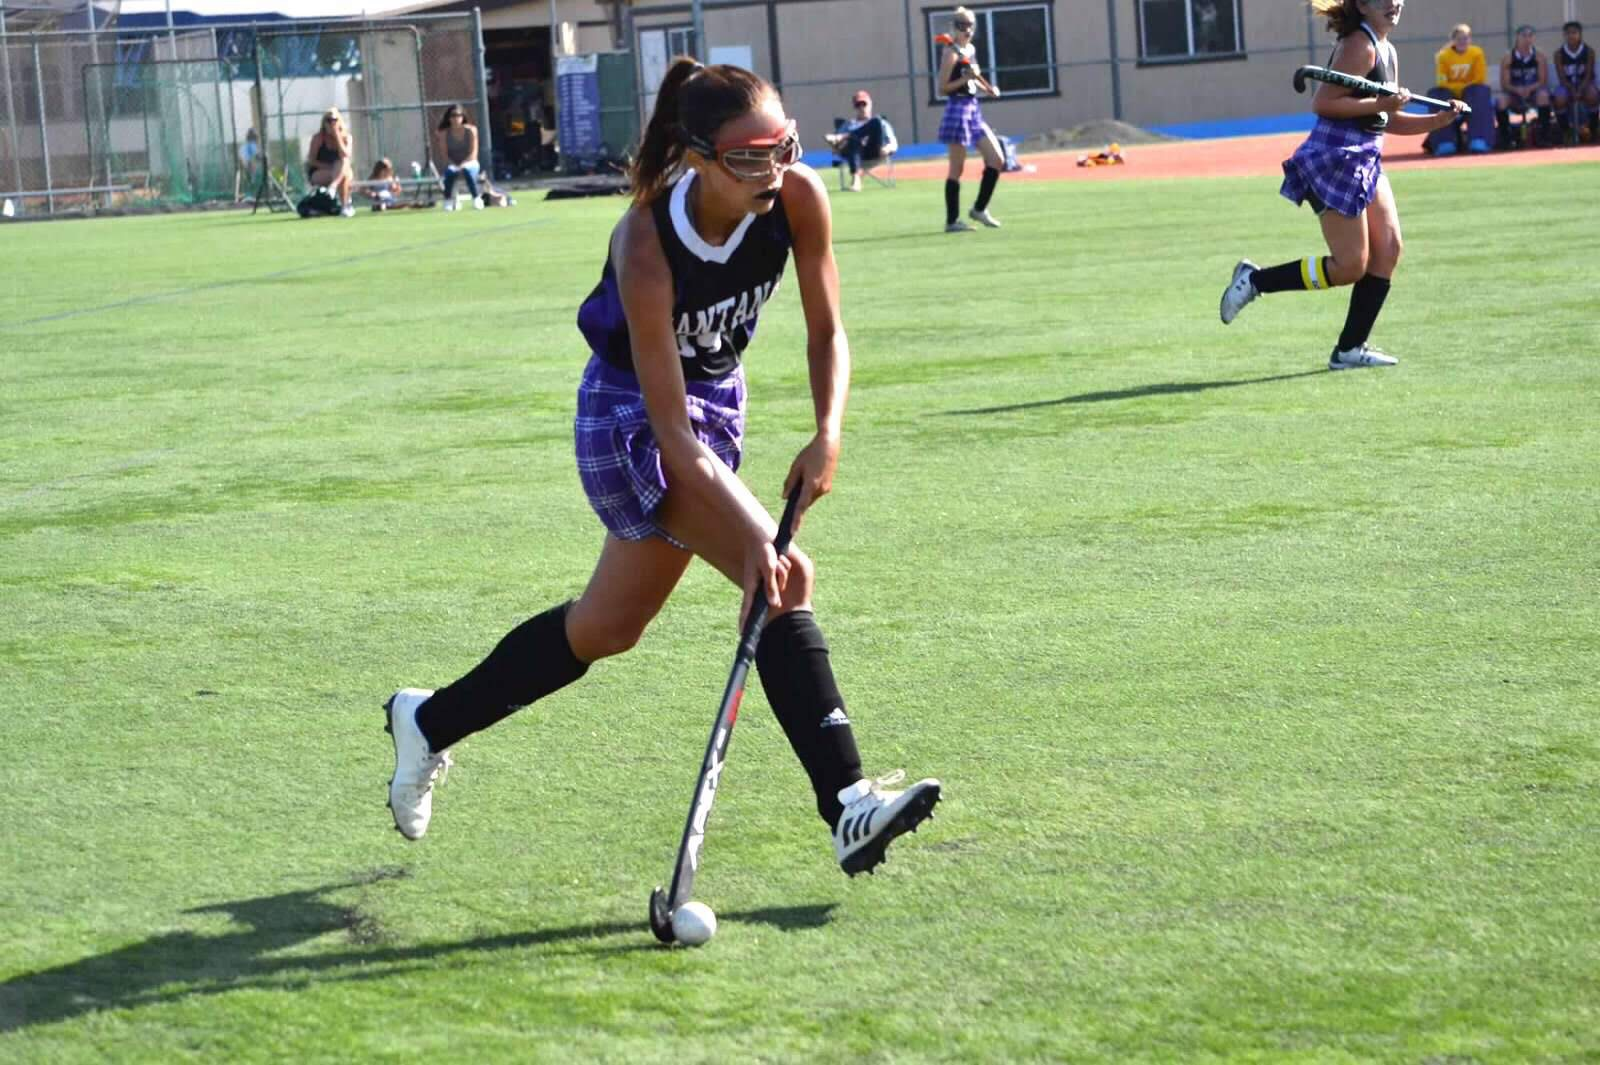 A girl playing field hockey, mid swing on the ball.